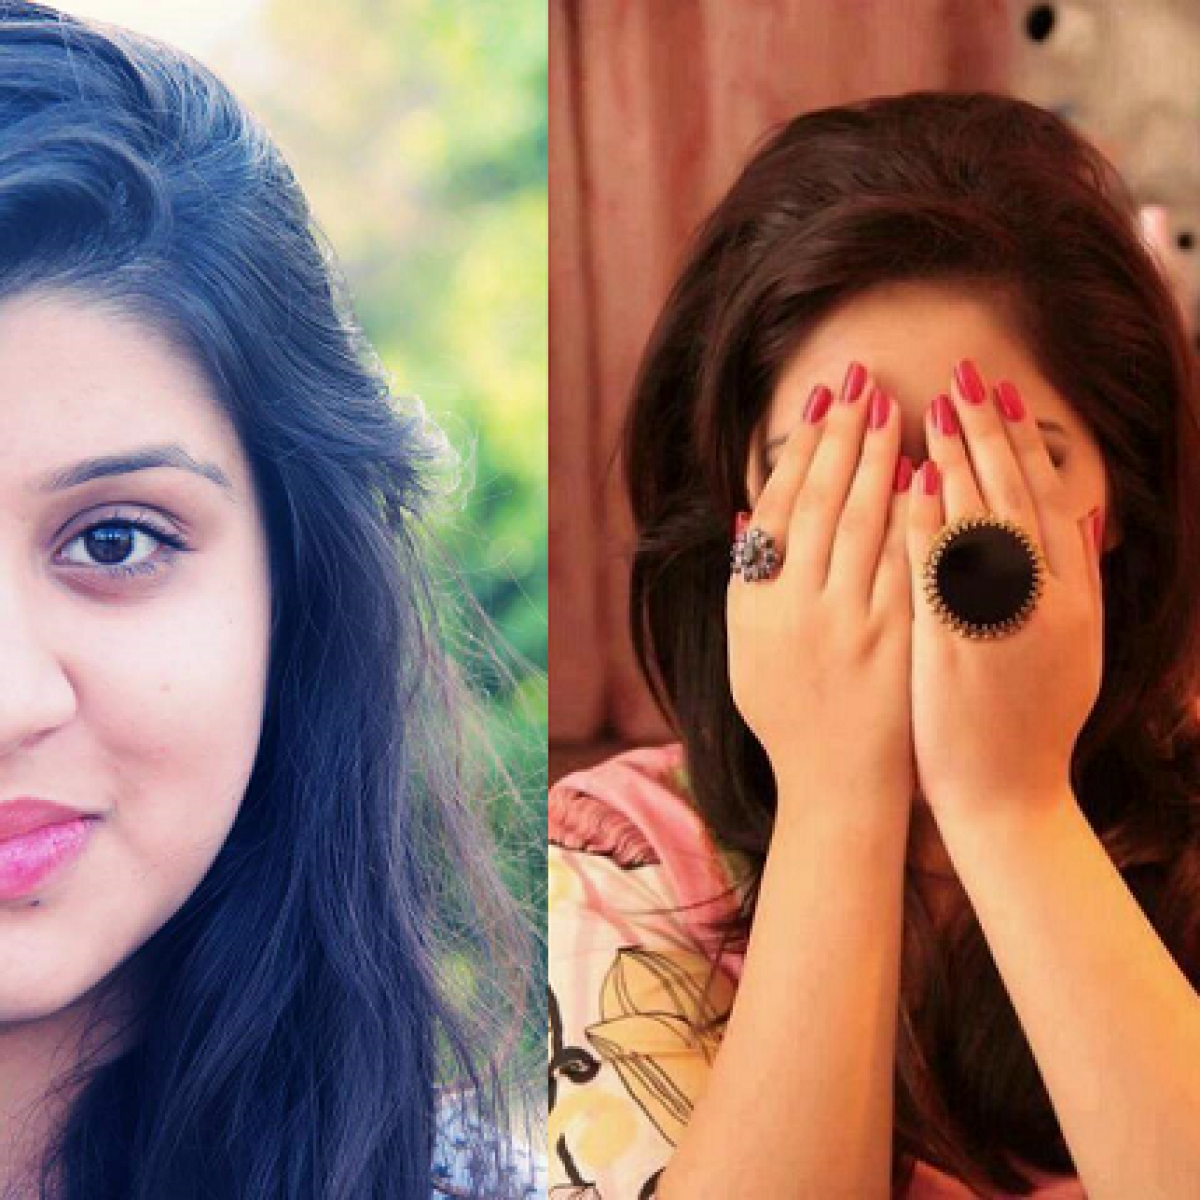 'Nisha Jindal' with 10,000 Facebook fans turns out to be engineering dropout Ravi Pujar